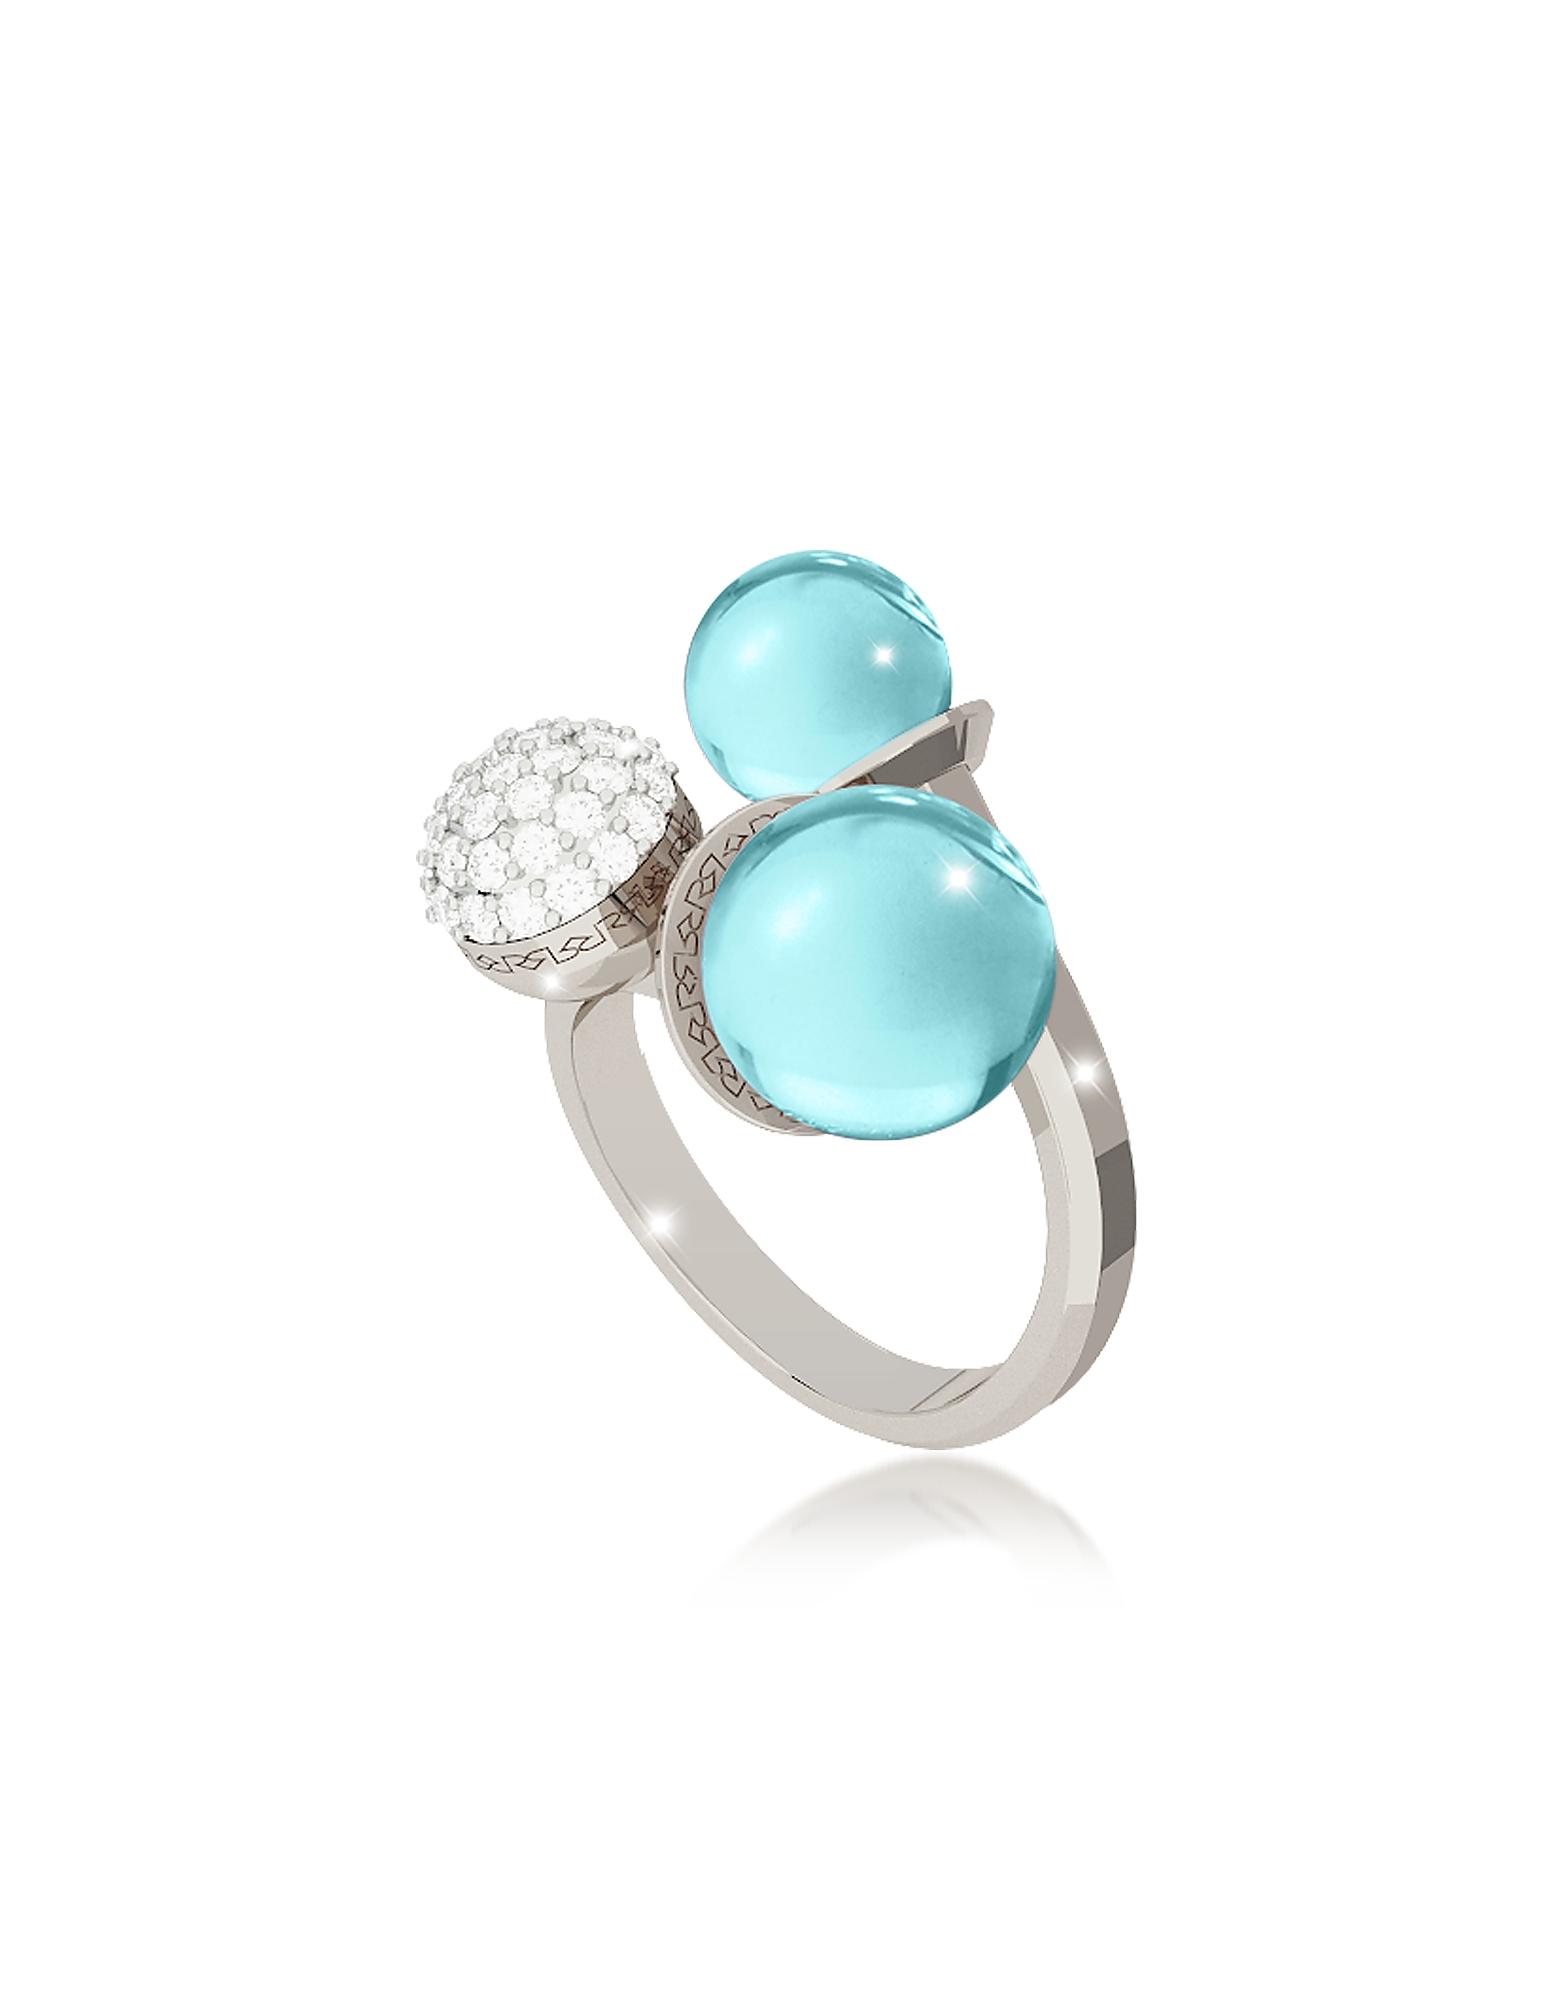 Rebecca Rings, Boulevard Stone Rhodium Over Bronze Ring w/Hydrothermal Turquoise Stones and Cubic Zi